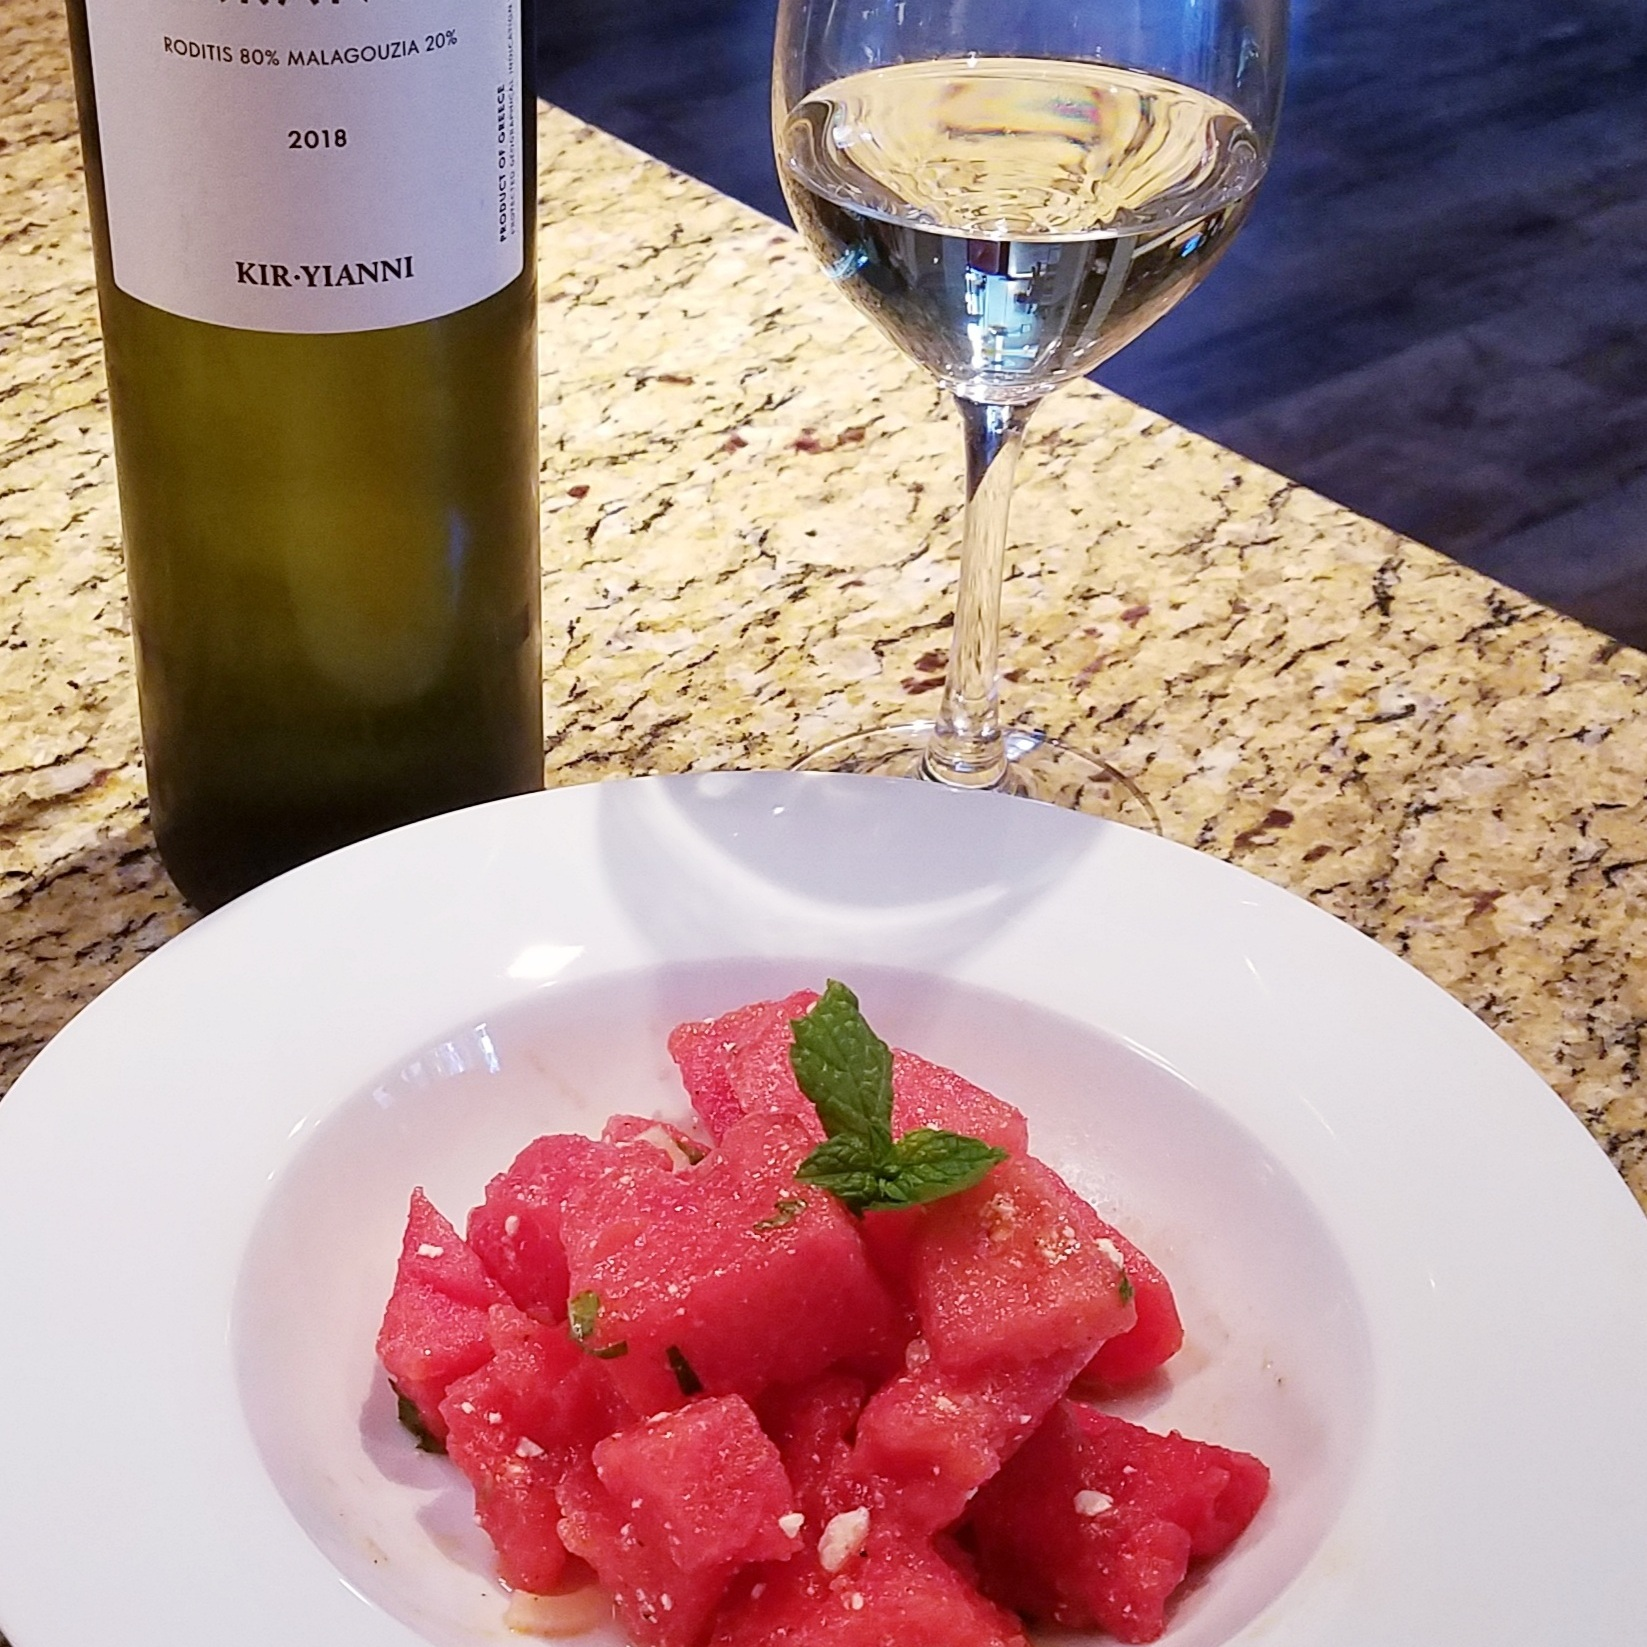 Watermelon Salad with Feta and Mint paired with Paranga Roditis and Malagouzia White Blend